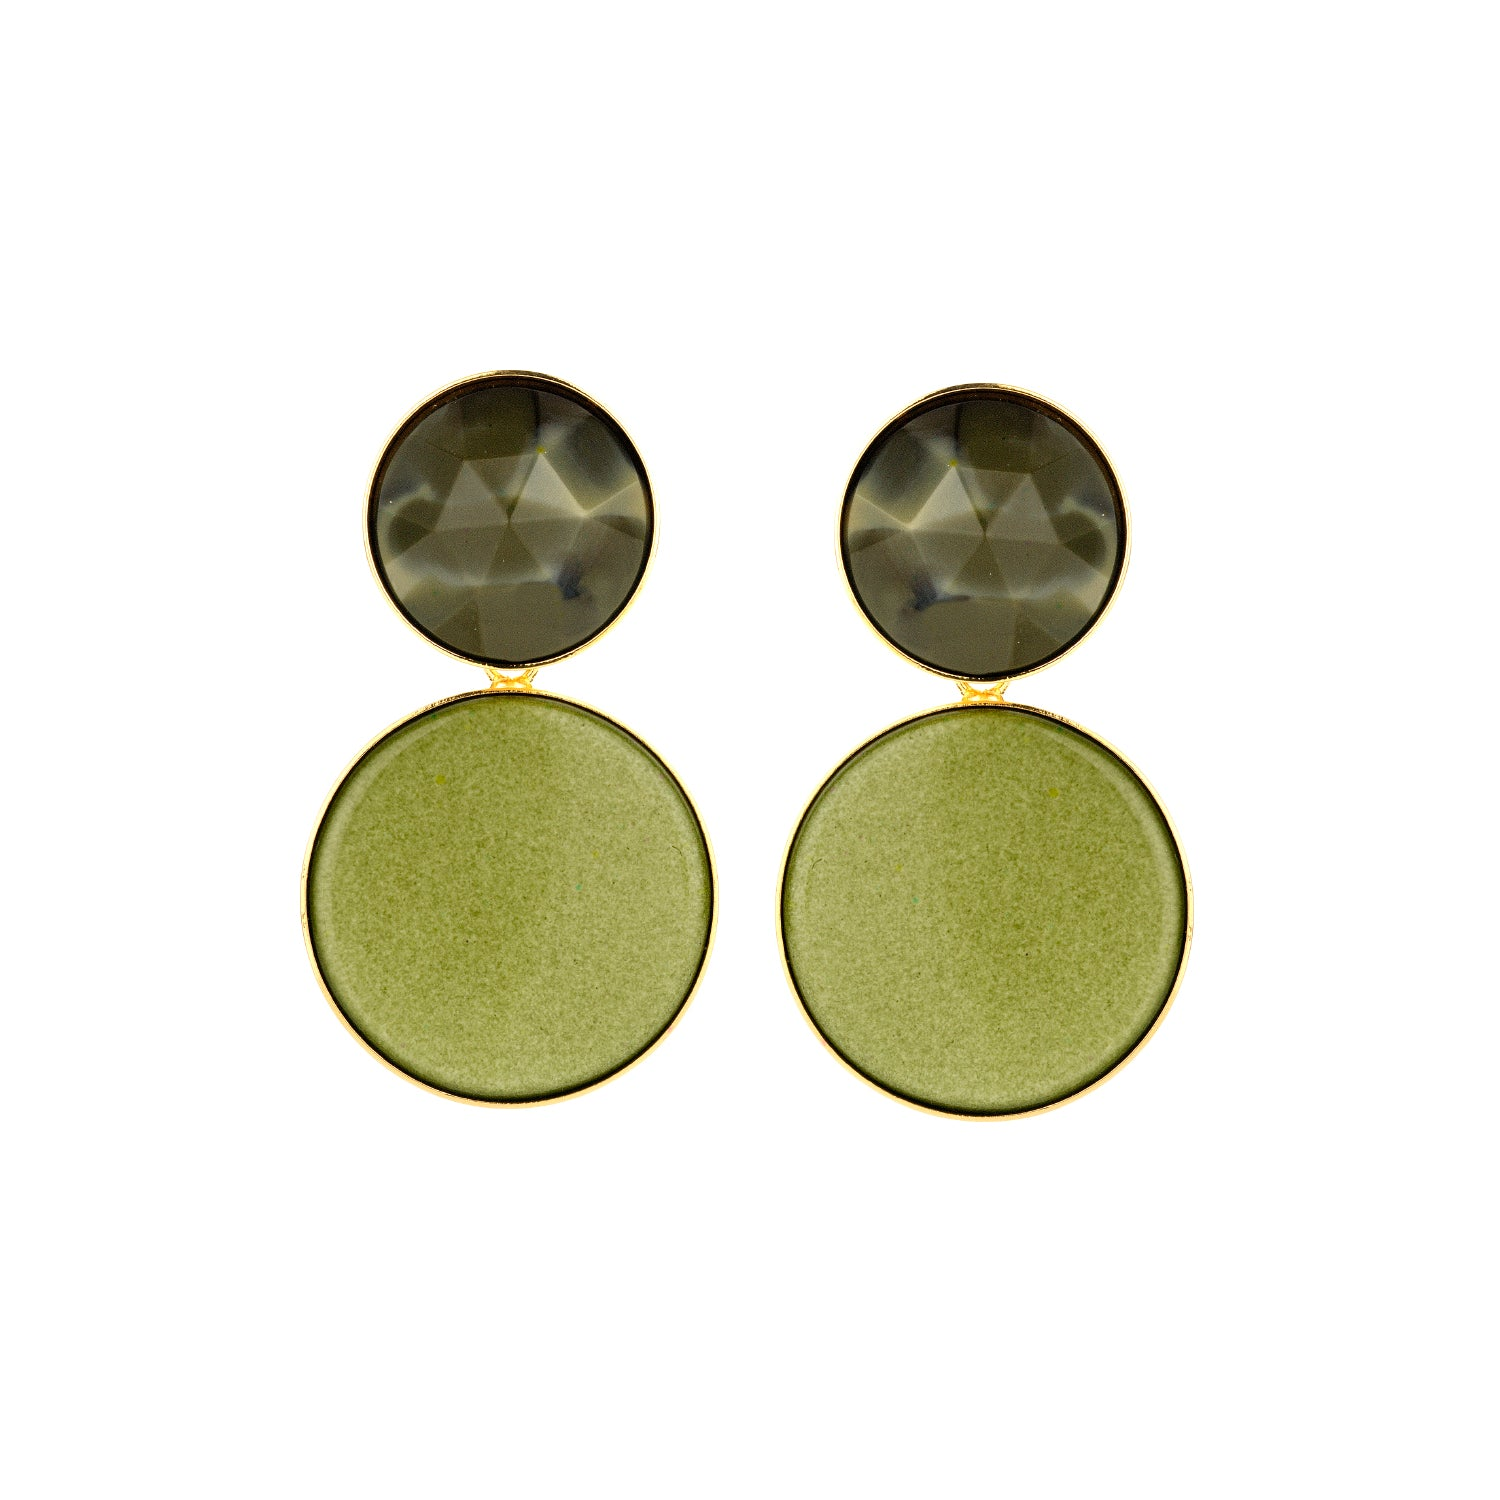 Large disk flat light kaki earrings - Souvenirs de Pomme